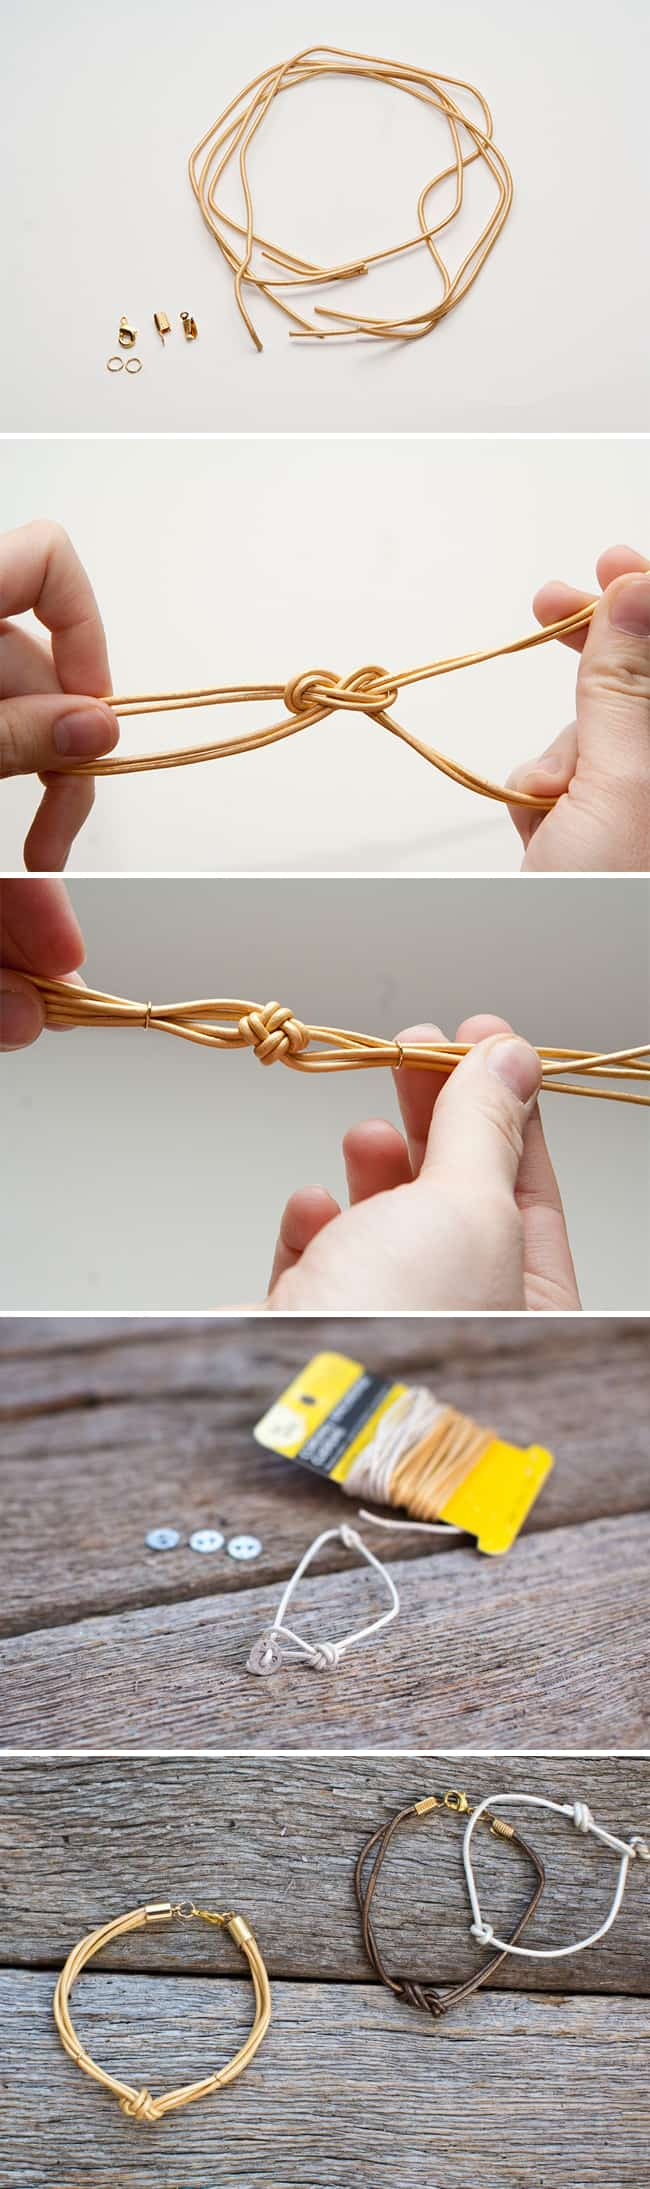 DIY Knotted Leather Bracelets | HelloNatural.co